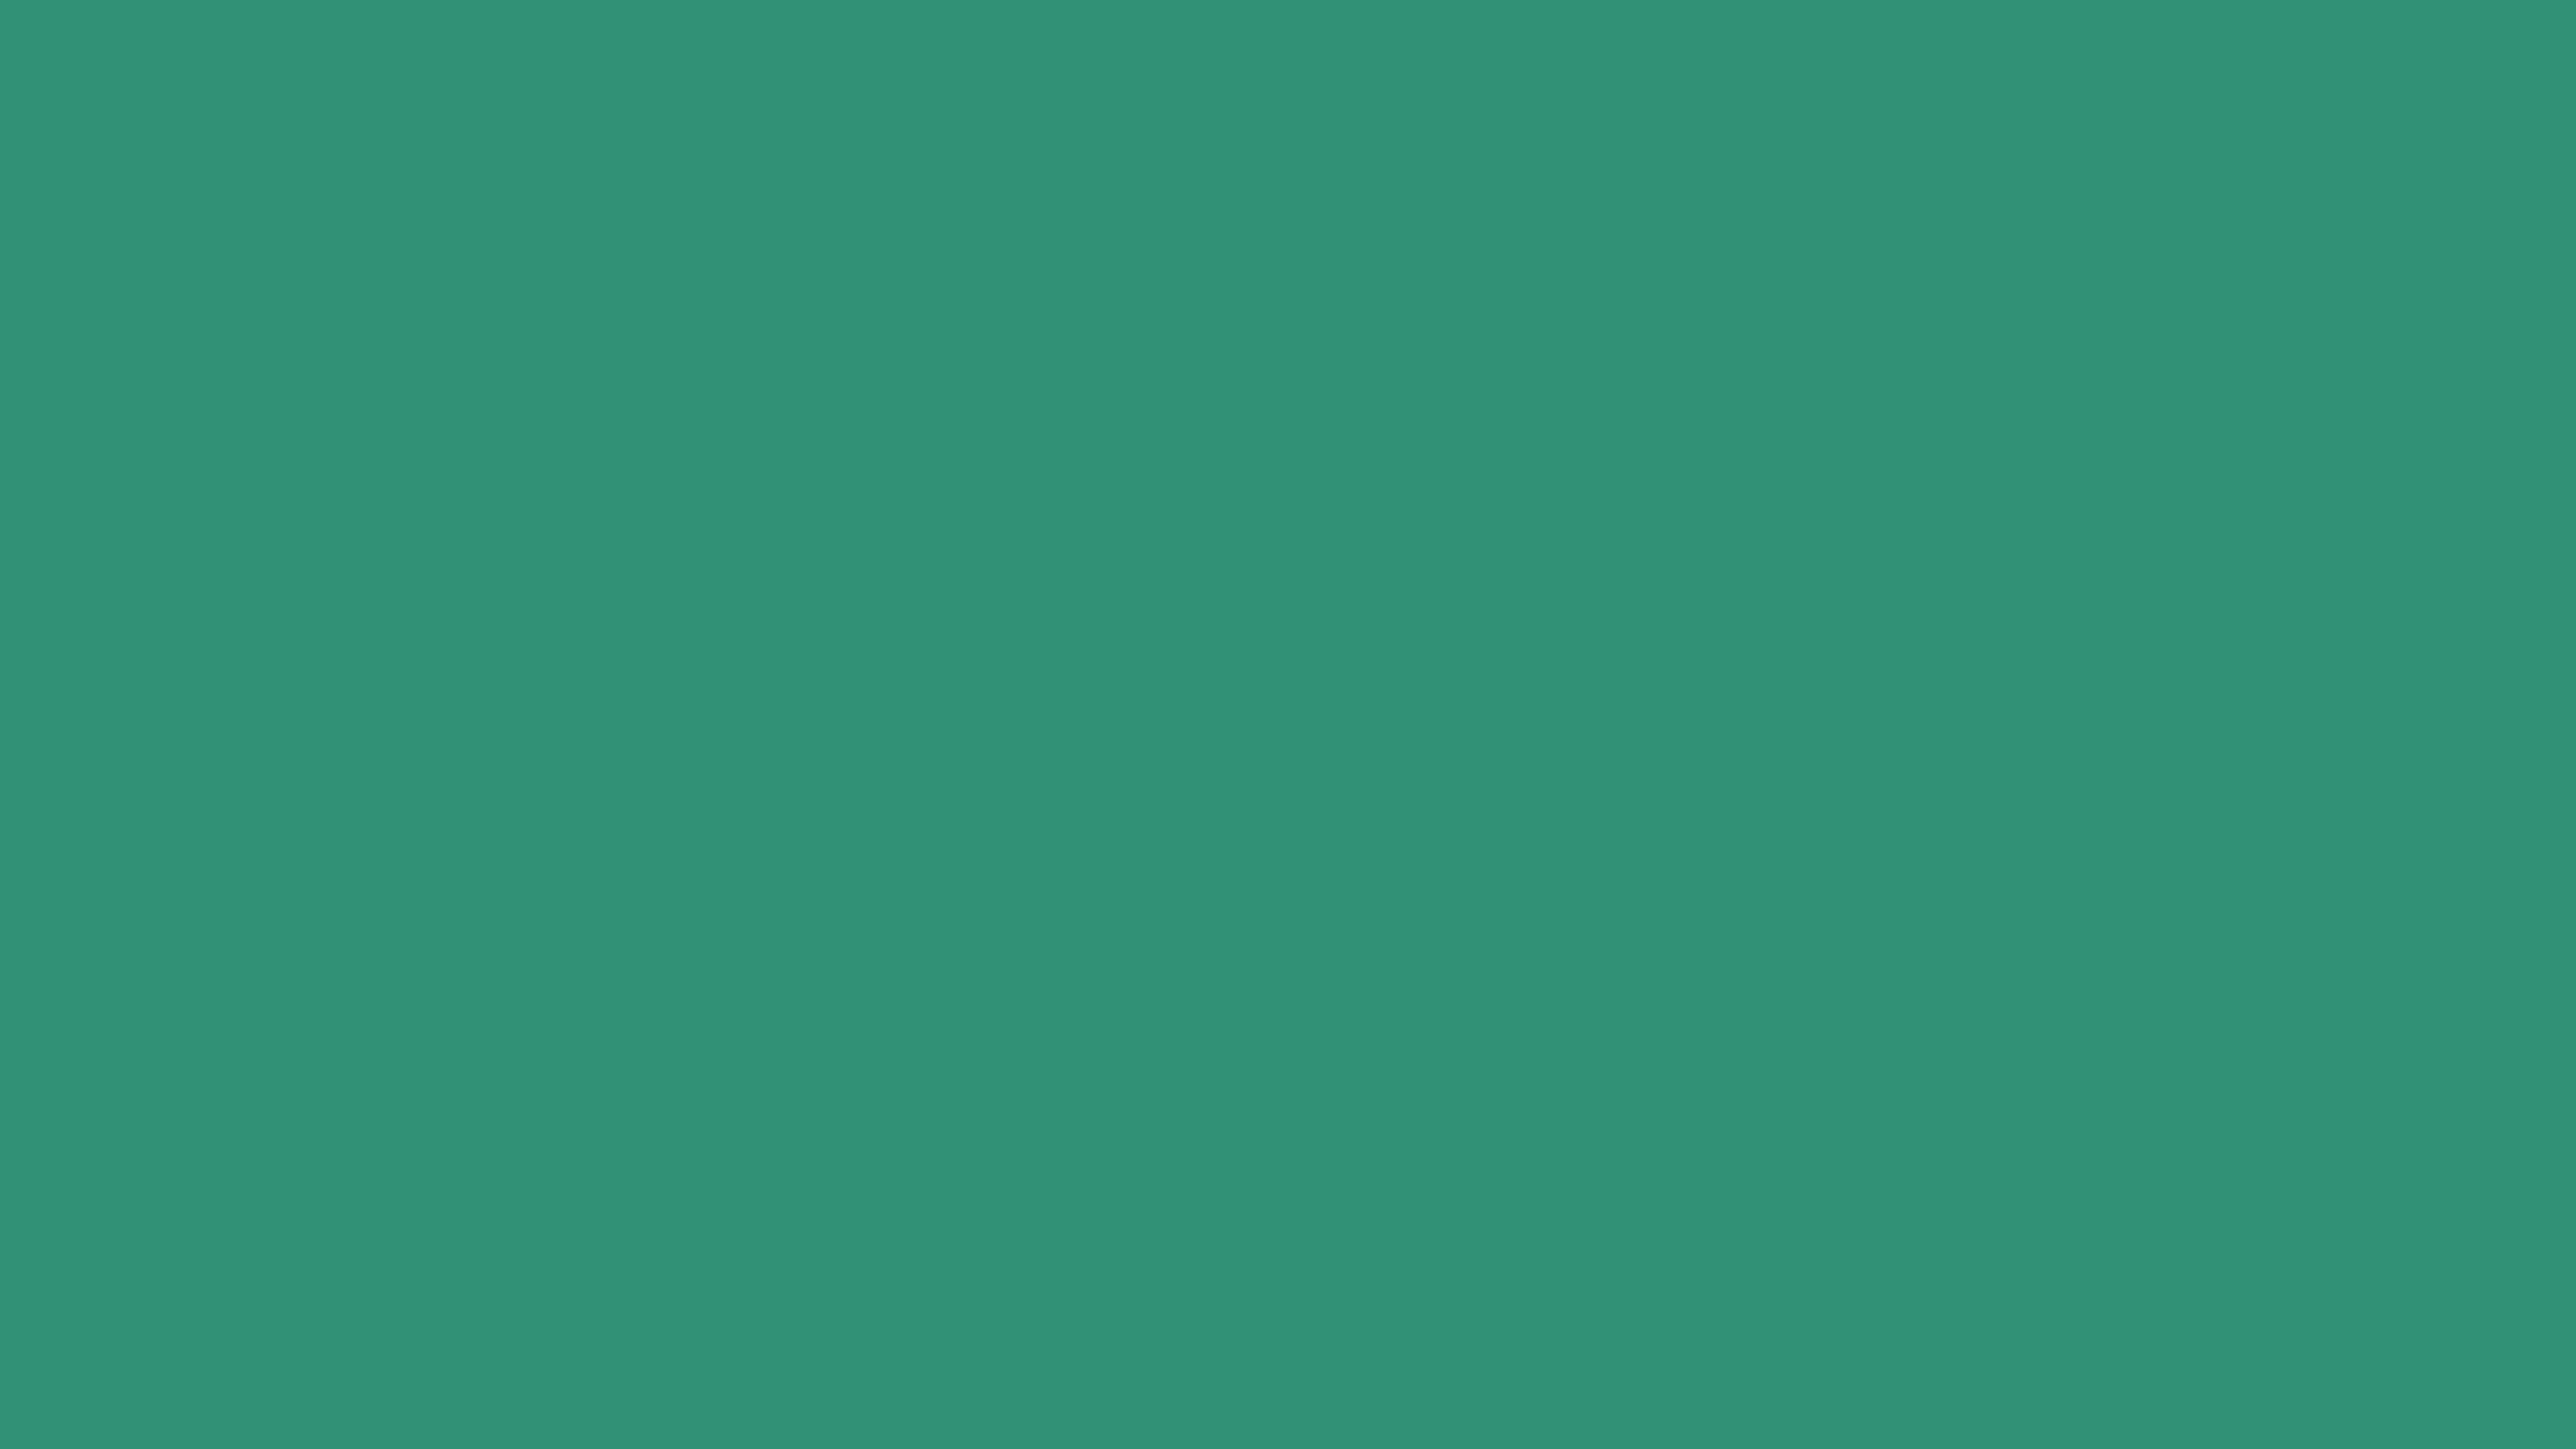 4096x2304 Illuminating Emerald Solid Color Background